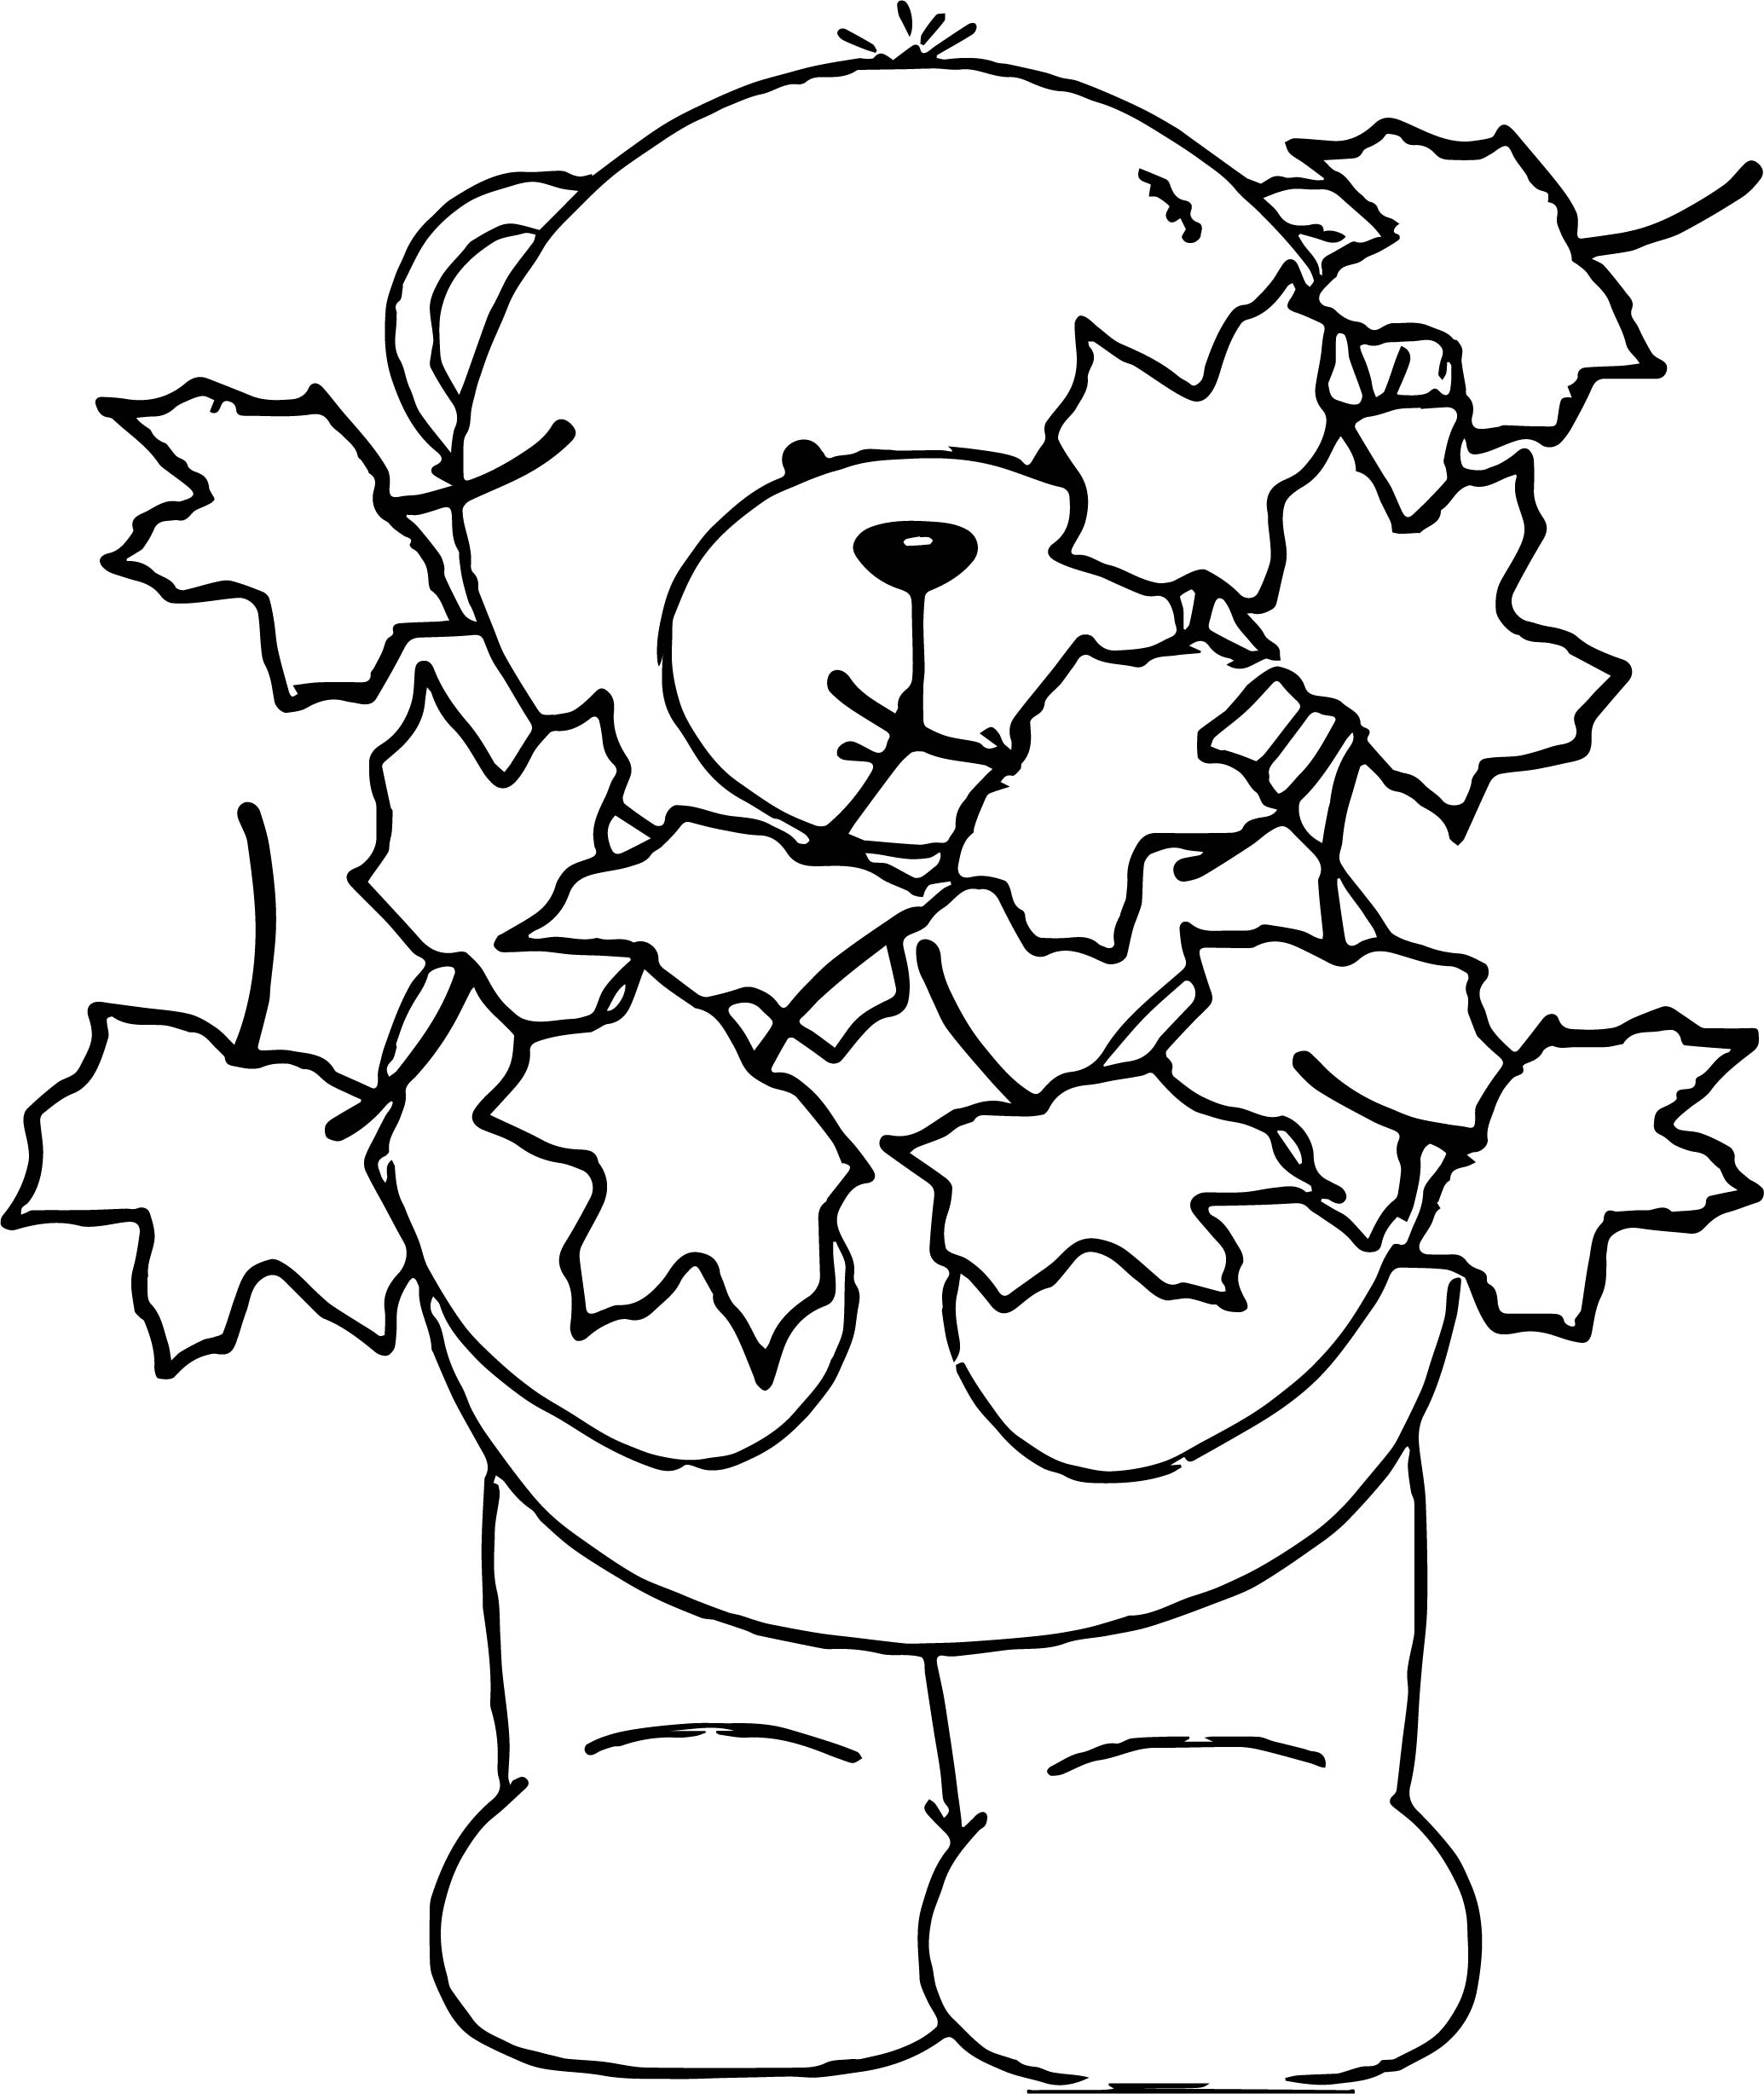 coloring pages leaf - bear autumn leaf coloring page